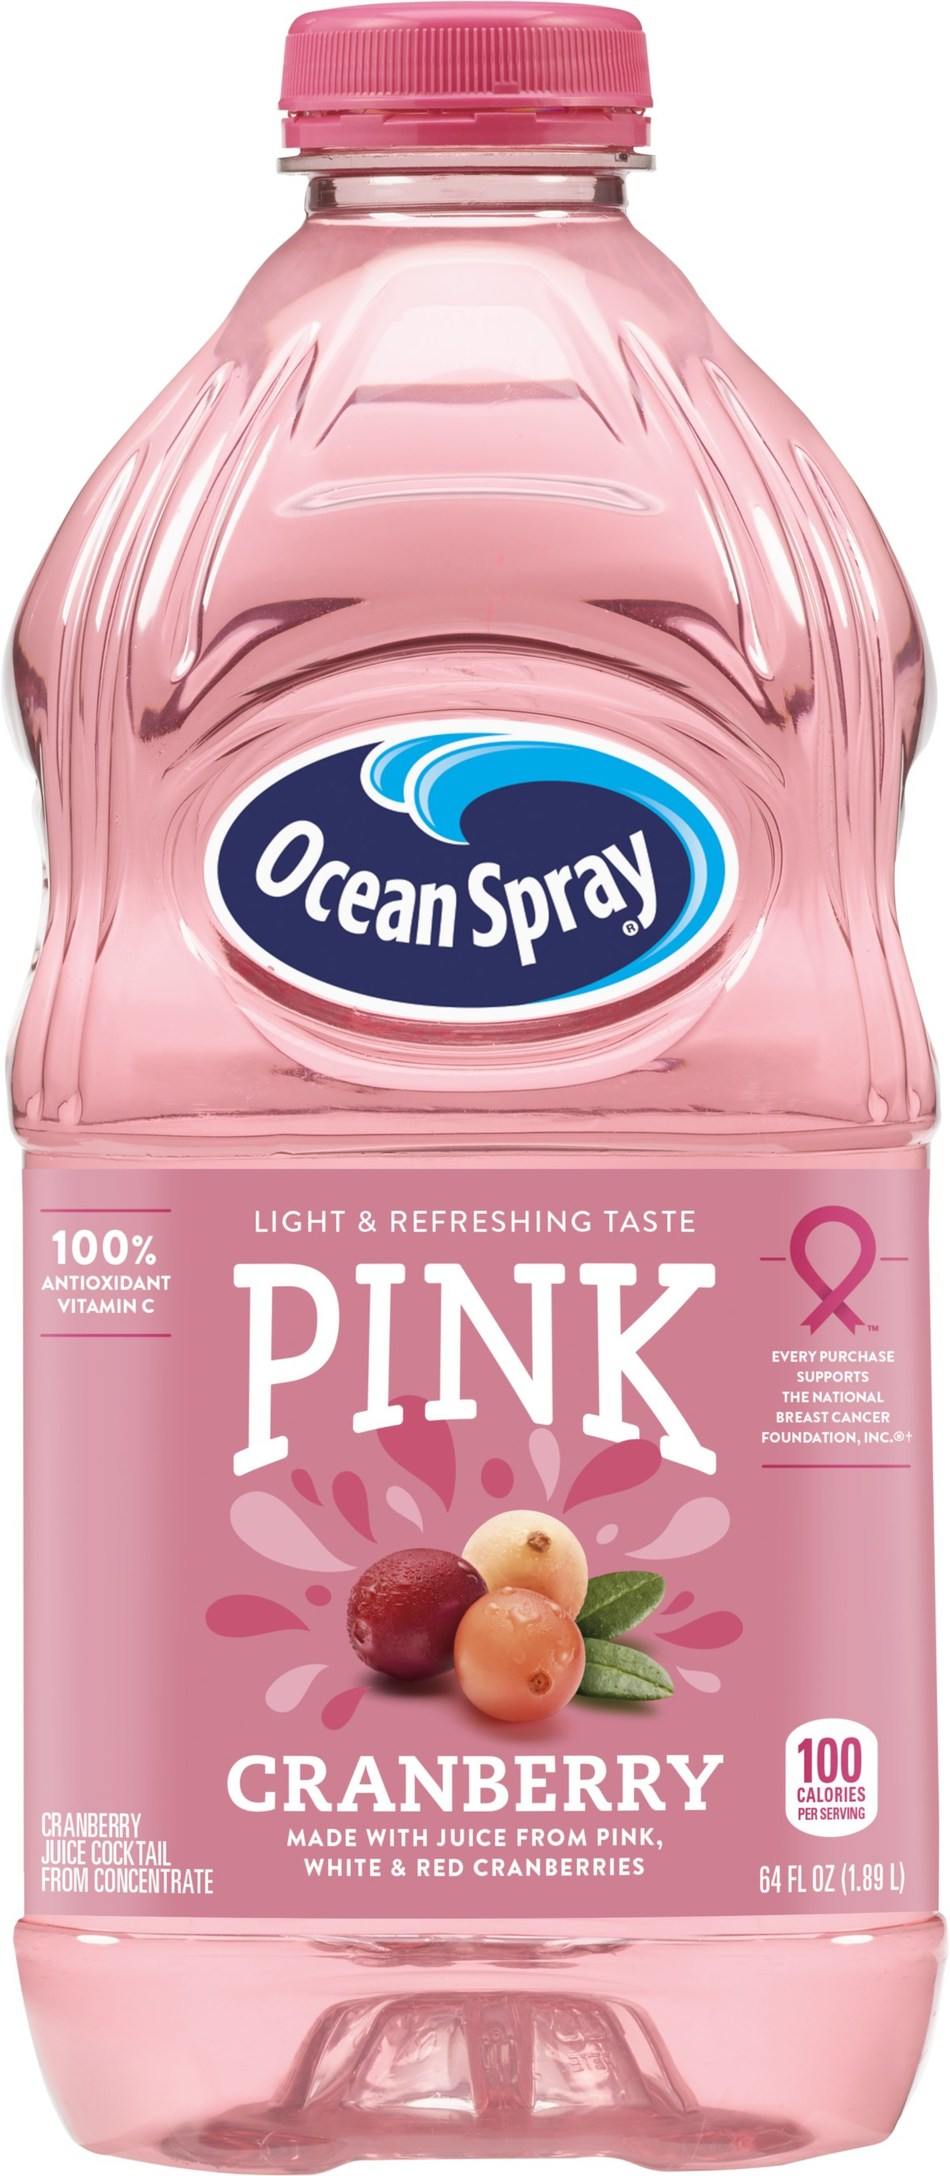 Ocean Spray launches its new Pink Cranberry Juice Drinks line in support of breast cancer awareness with 5% of Ocean Spray's sales of Pink Cranberry Juice Drink in the United States and Canada being donated to the National Breast Cancer Foundation, Inc.®, up to $250,000 annually.